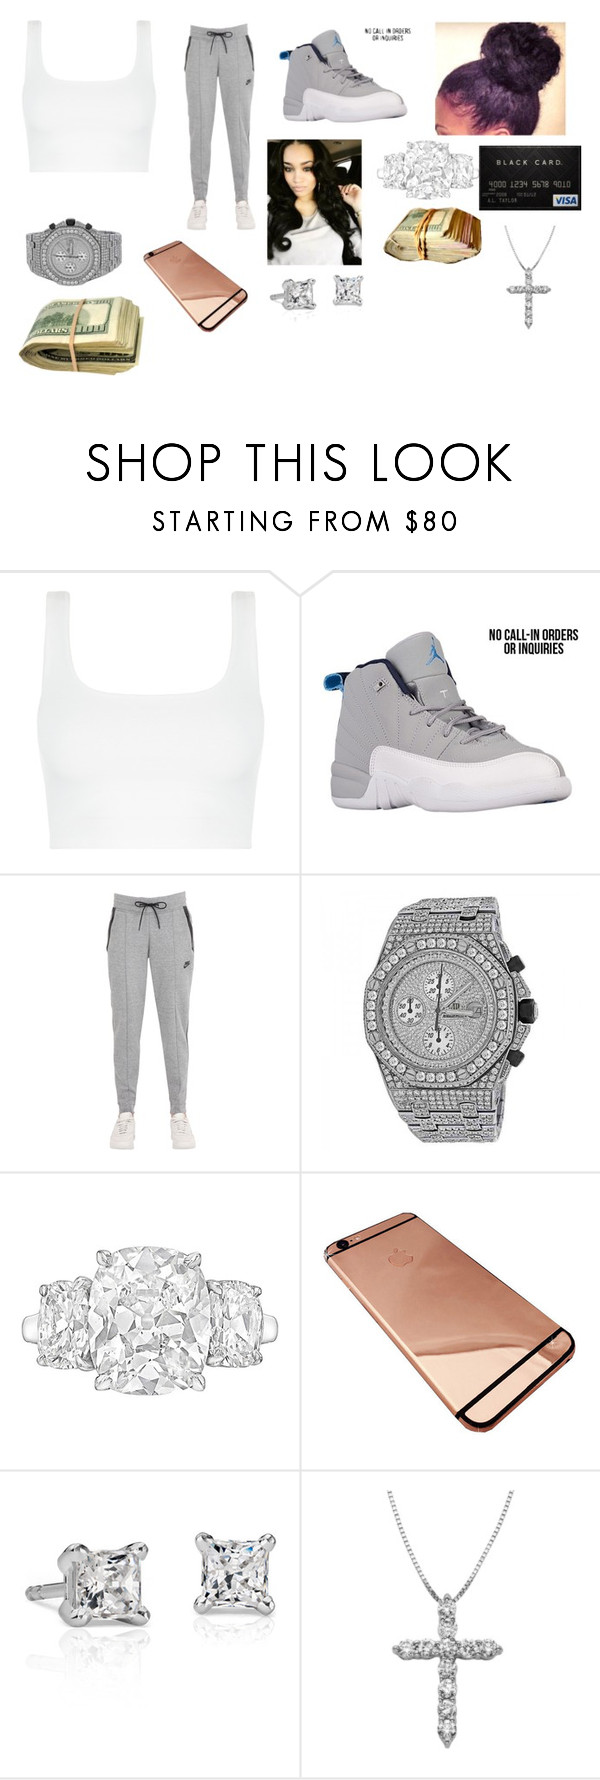 """Slight but getting ready for Kansas"" by foreverrcourtney ❤ liked on Polyvore featuring NIKE, Audemars Piguet and Blue Nile"